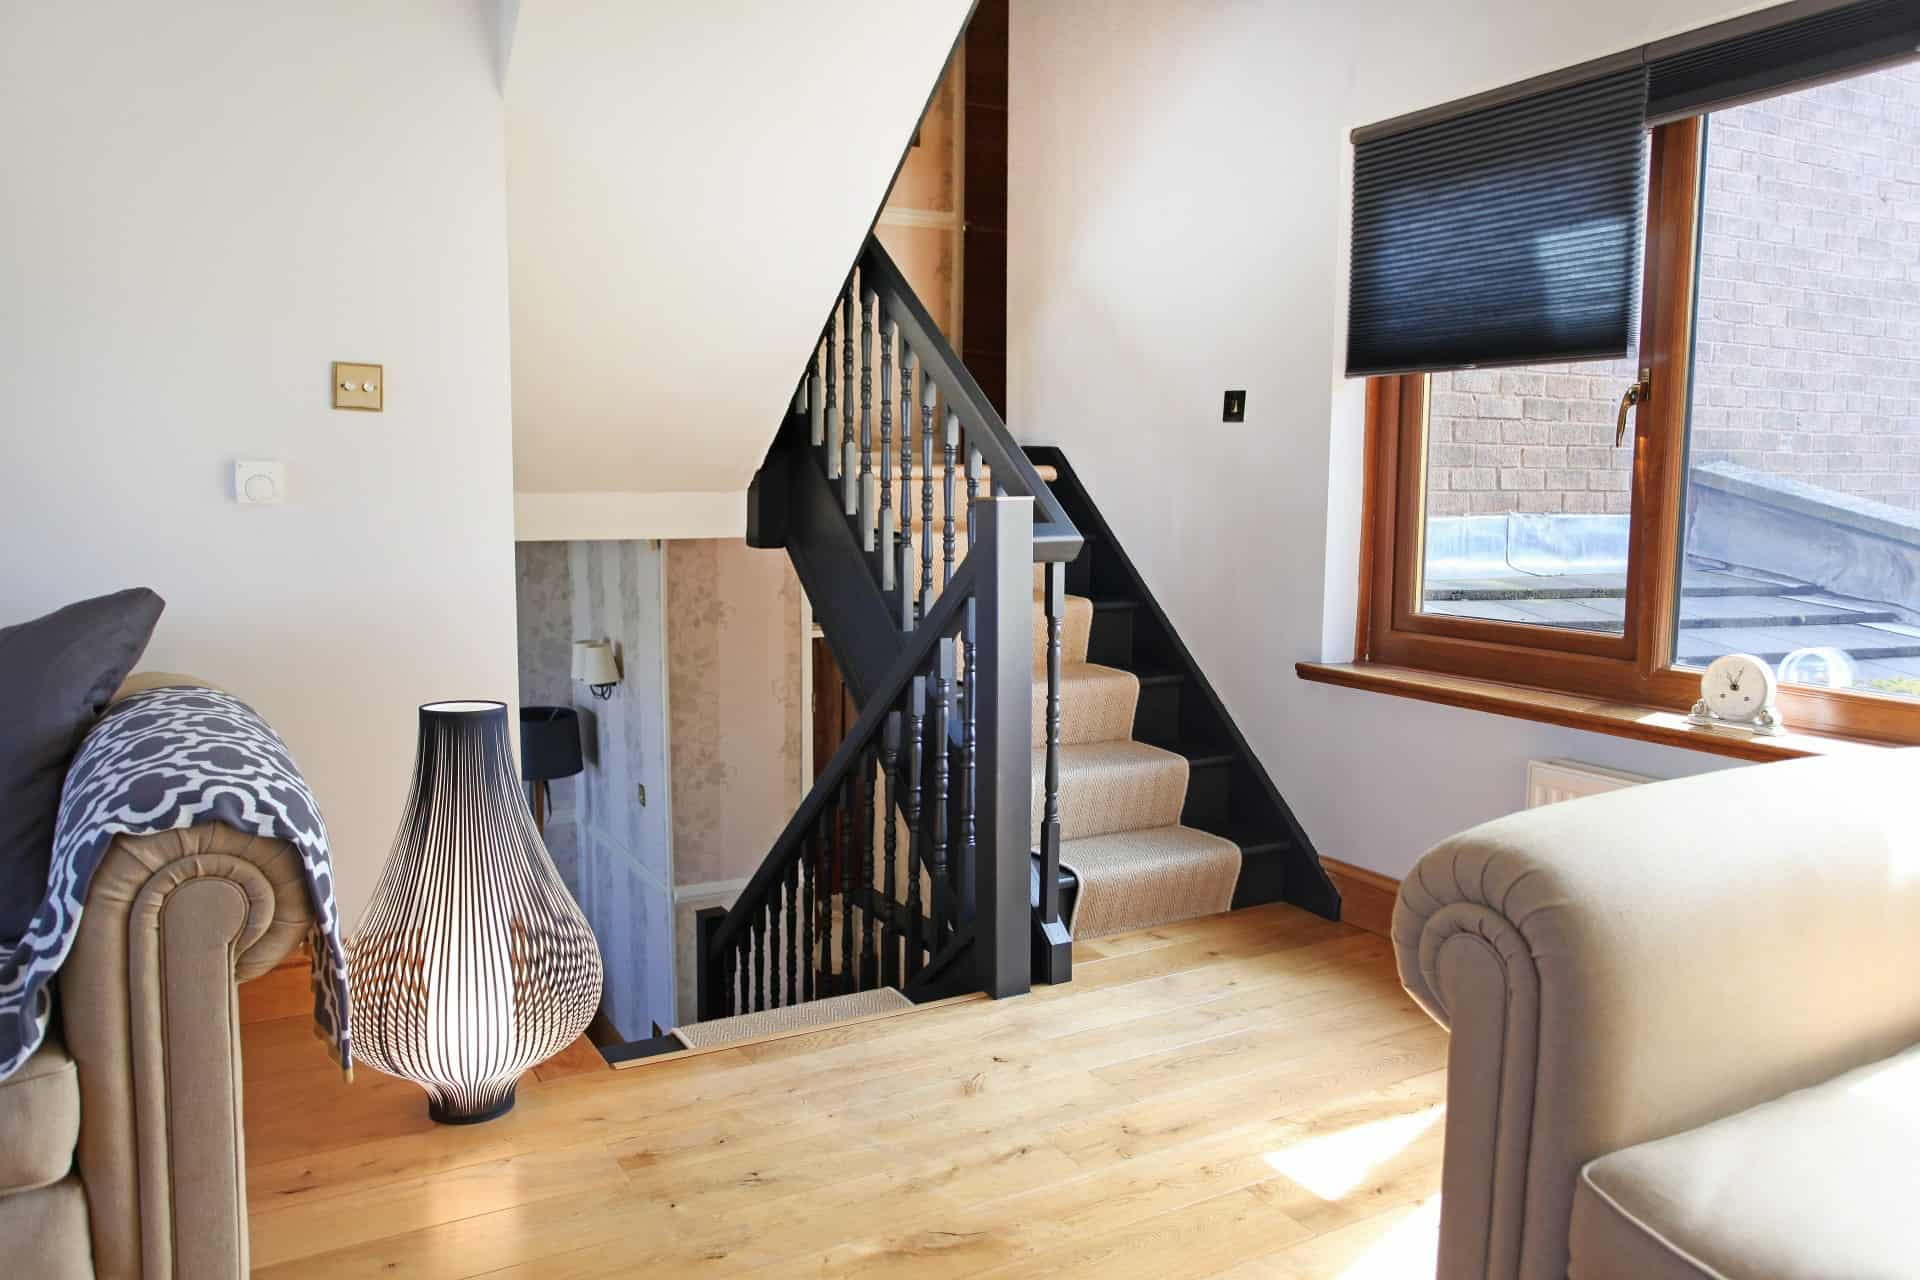 black spindle balustrade